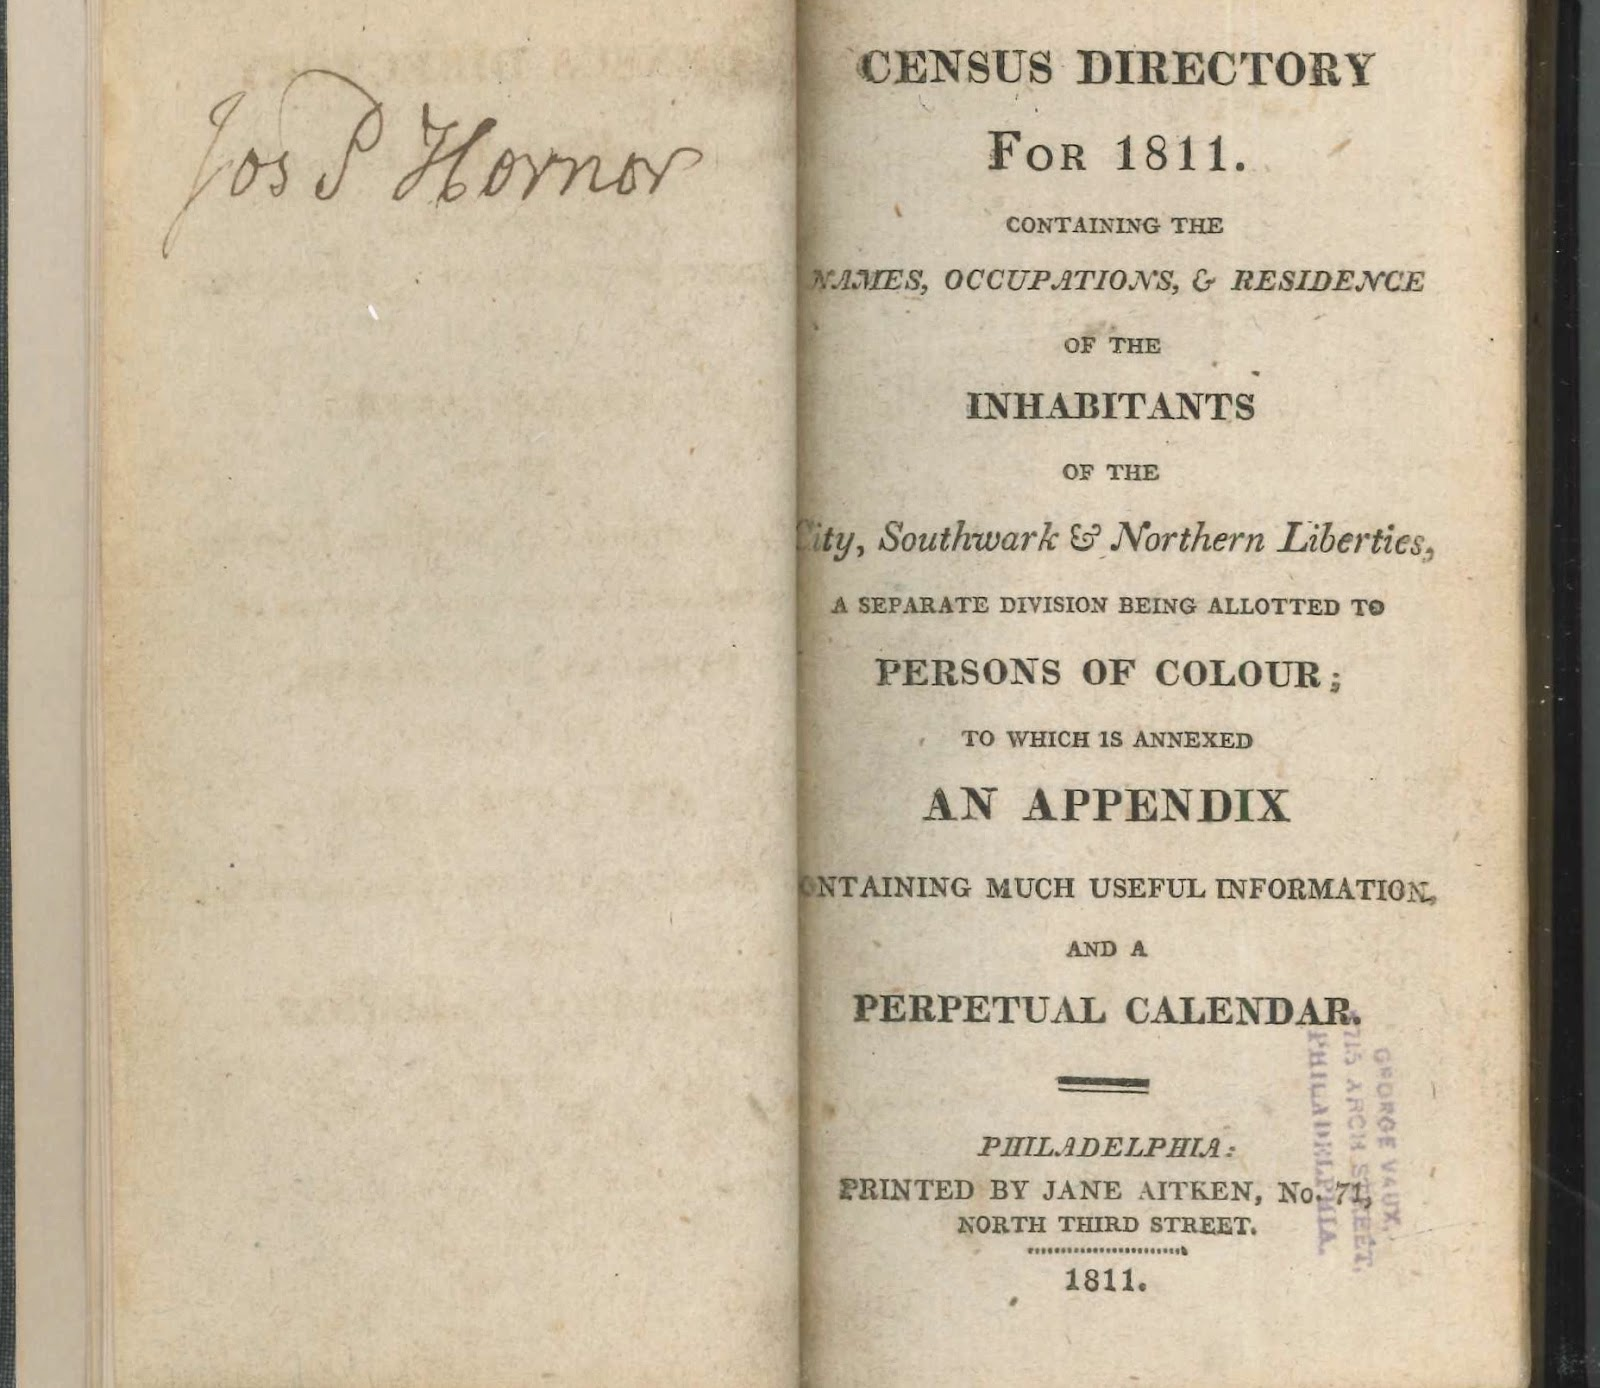 A title page for the 1811 census directory.